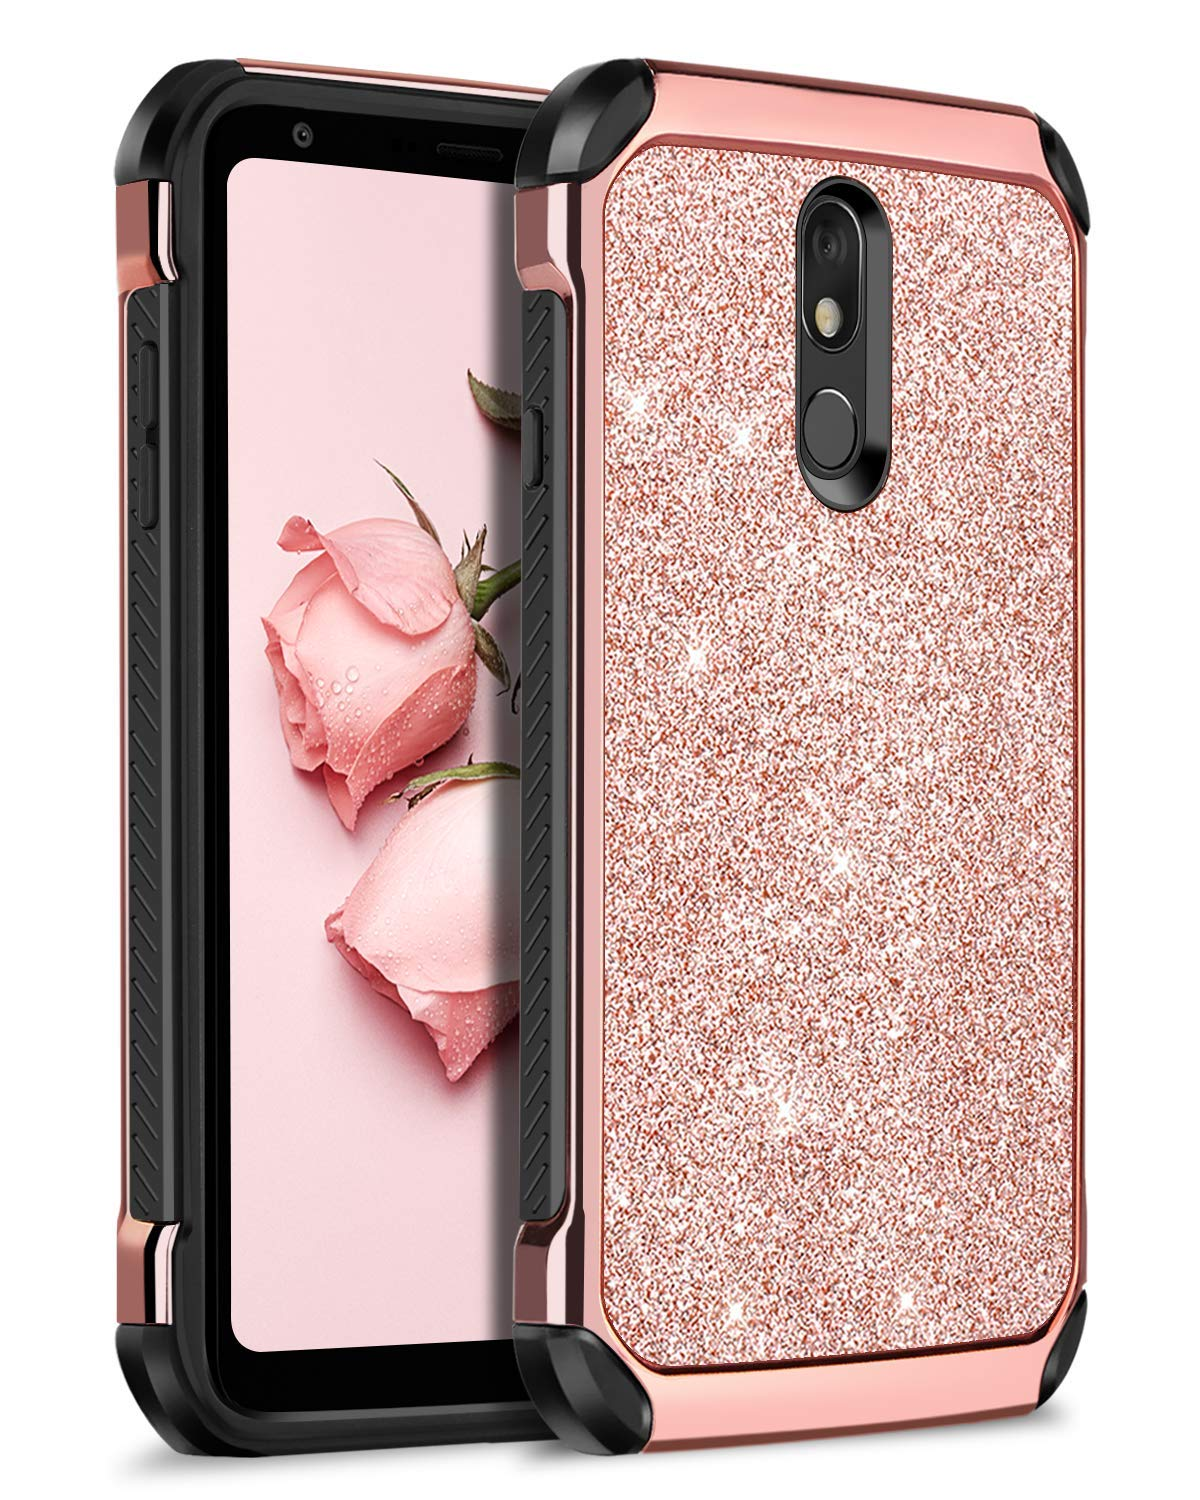 BENTOBEN LG Stylo 5 Case, 2 in 1 Hybrid Anti-Slip Soft Rubber Bumper Hard Cover Glitter Sparkle Bling Shiny Faux Leather Girls Women Rugged Shockproof Protective Phone Case for LG Stylo 5, Rose Gold